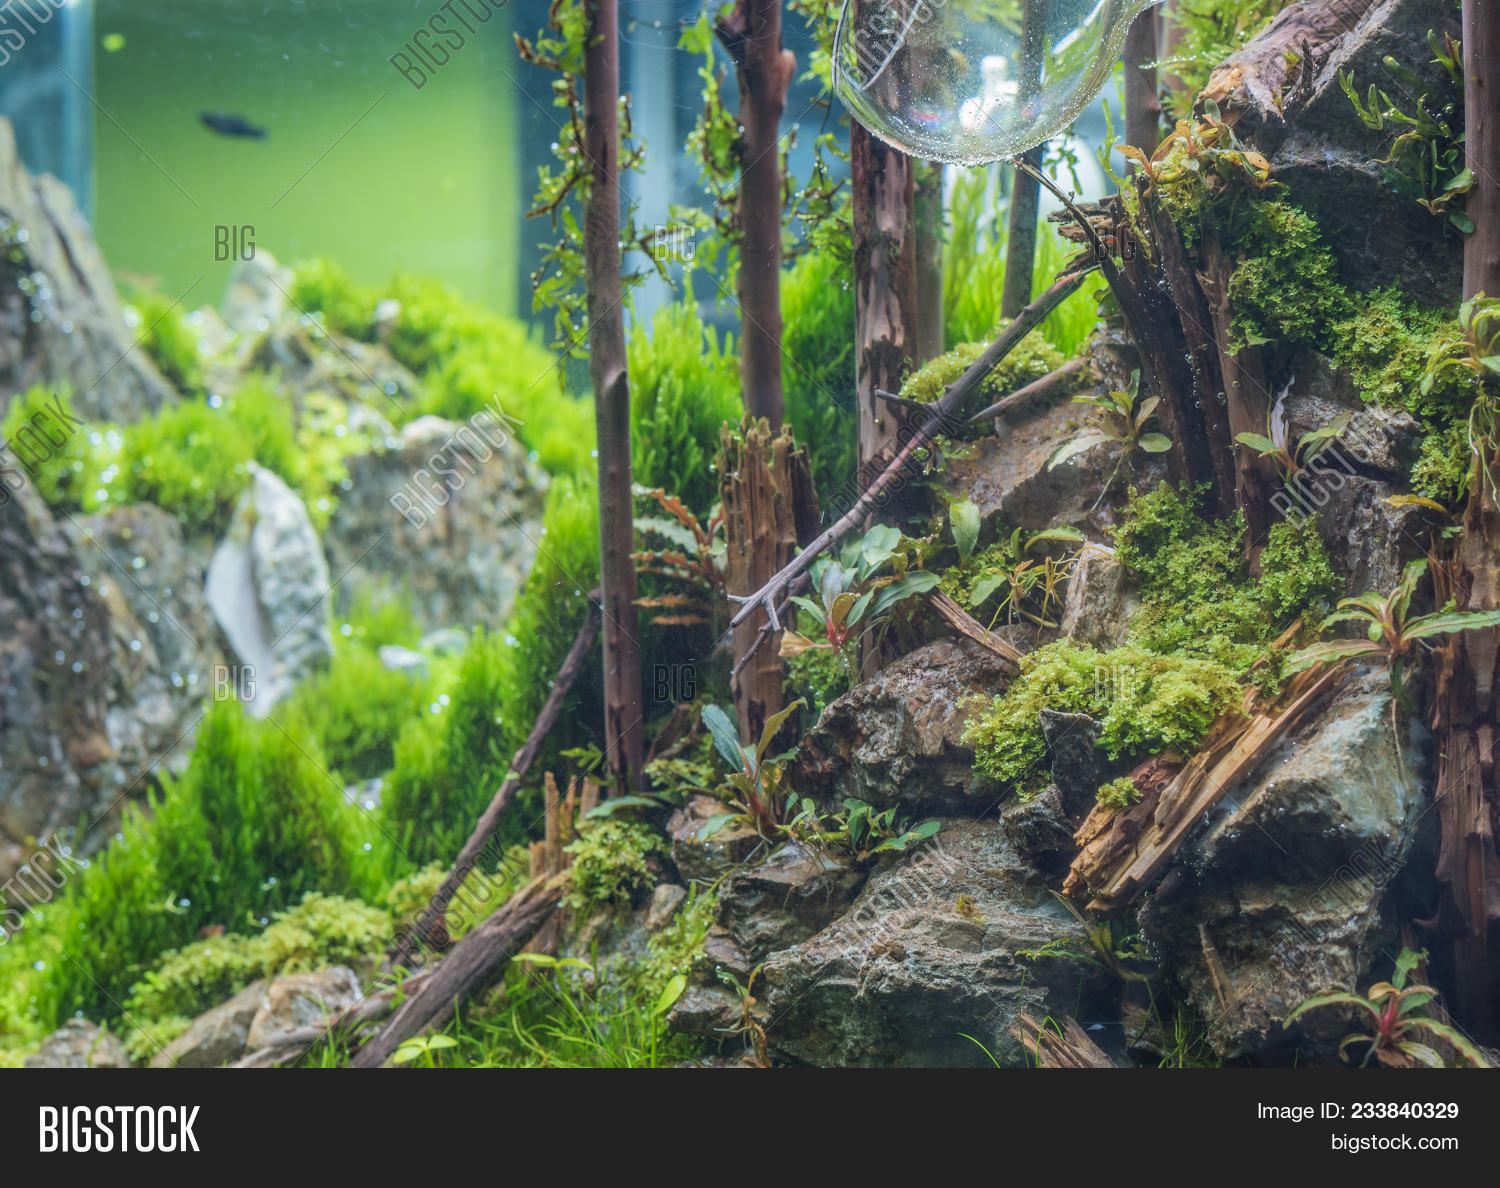 Close Up Image Of Forest In Nature Style Aquarium Tank With A Variety Of Aquatic Plants Inside Image Stock Photo 233840329